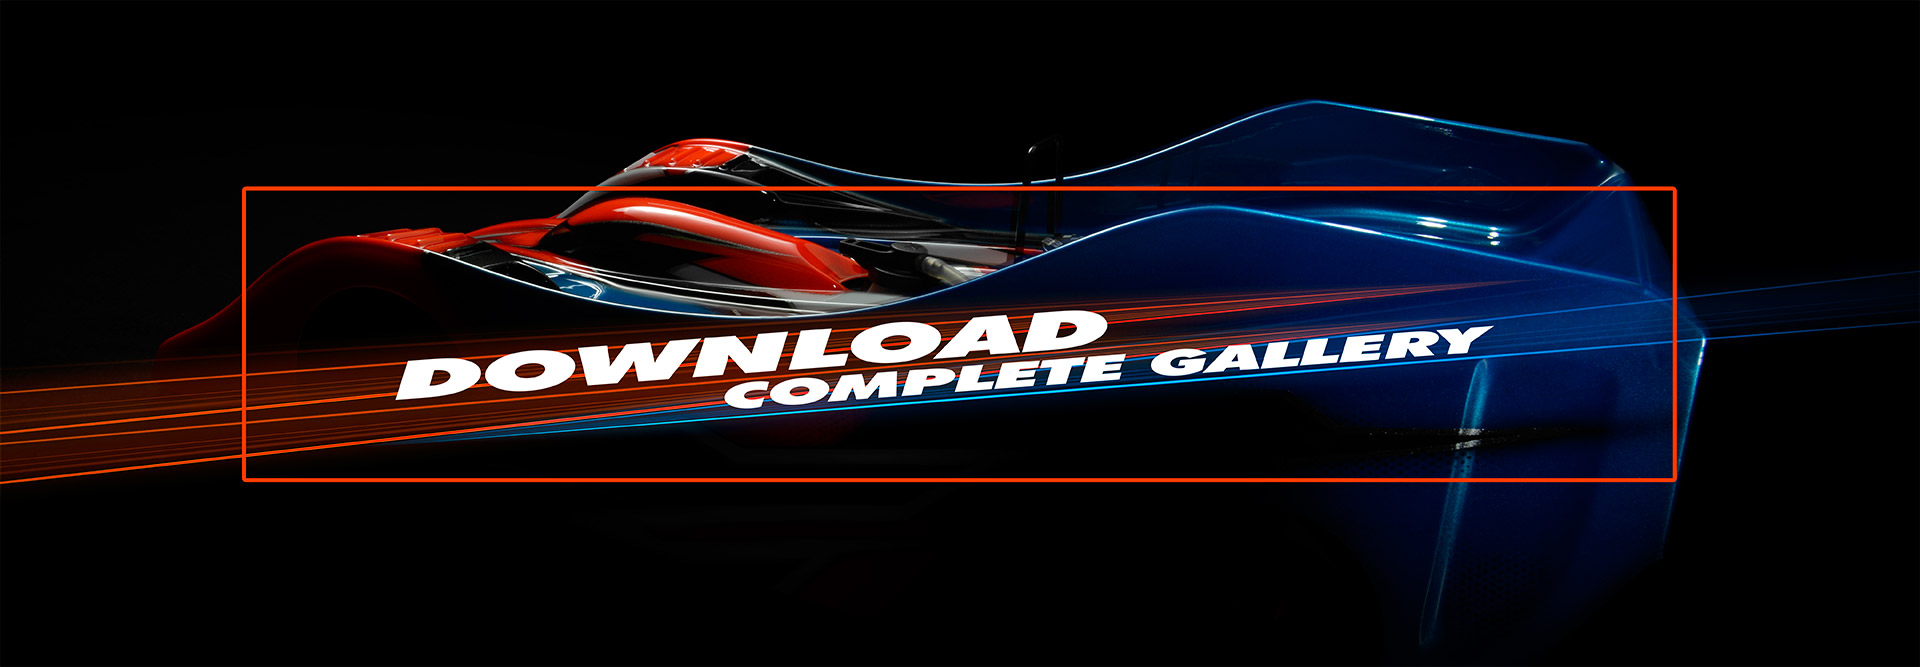 Download complete gallery